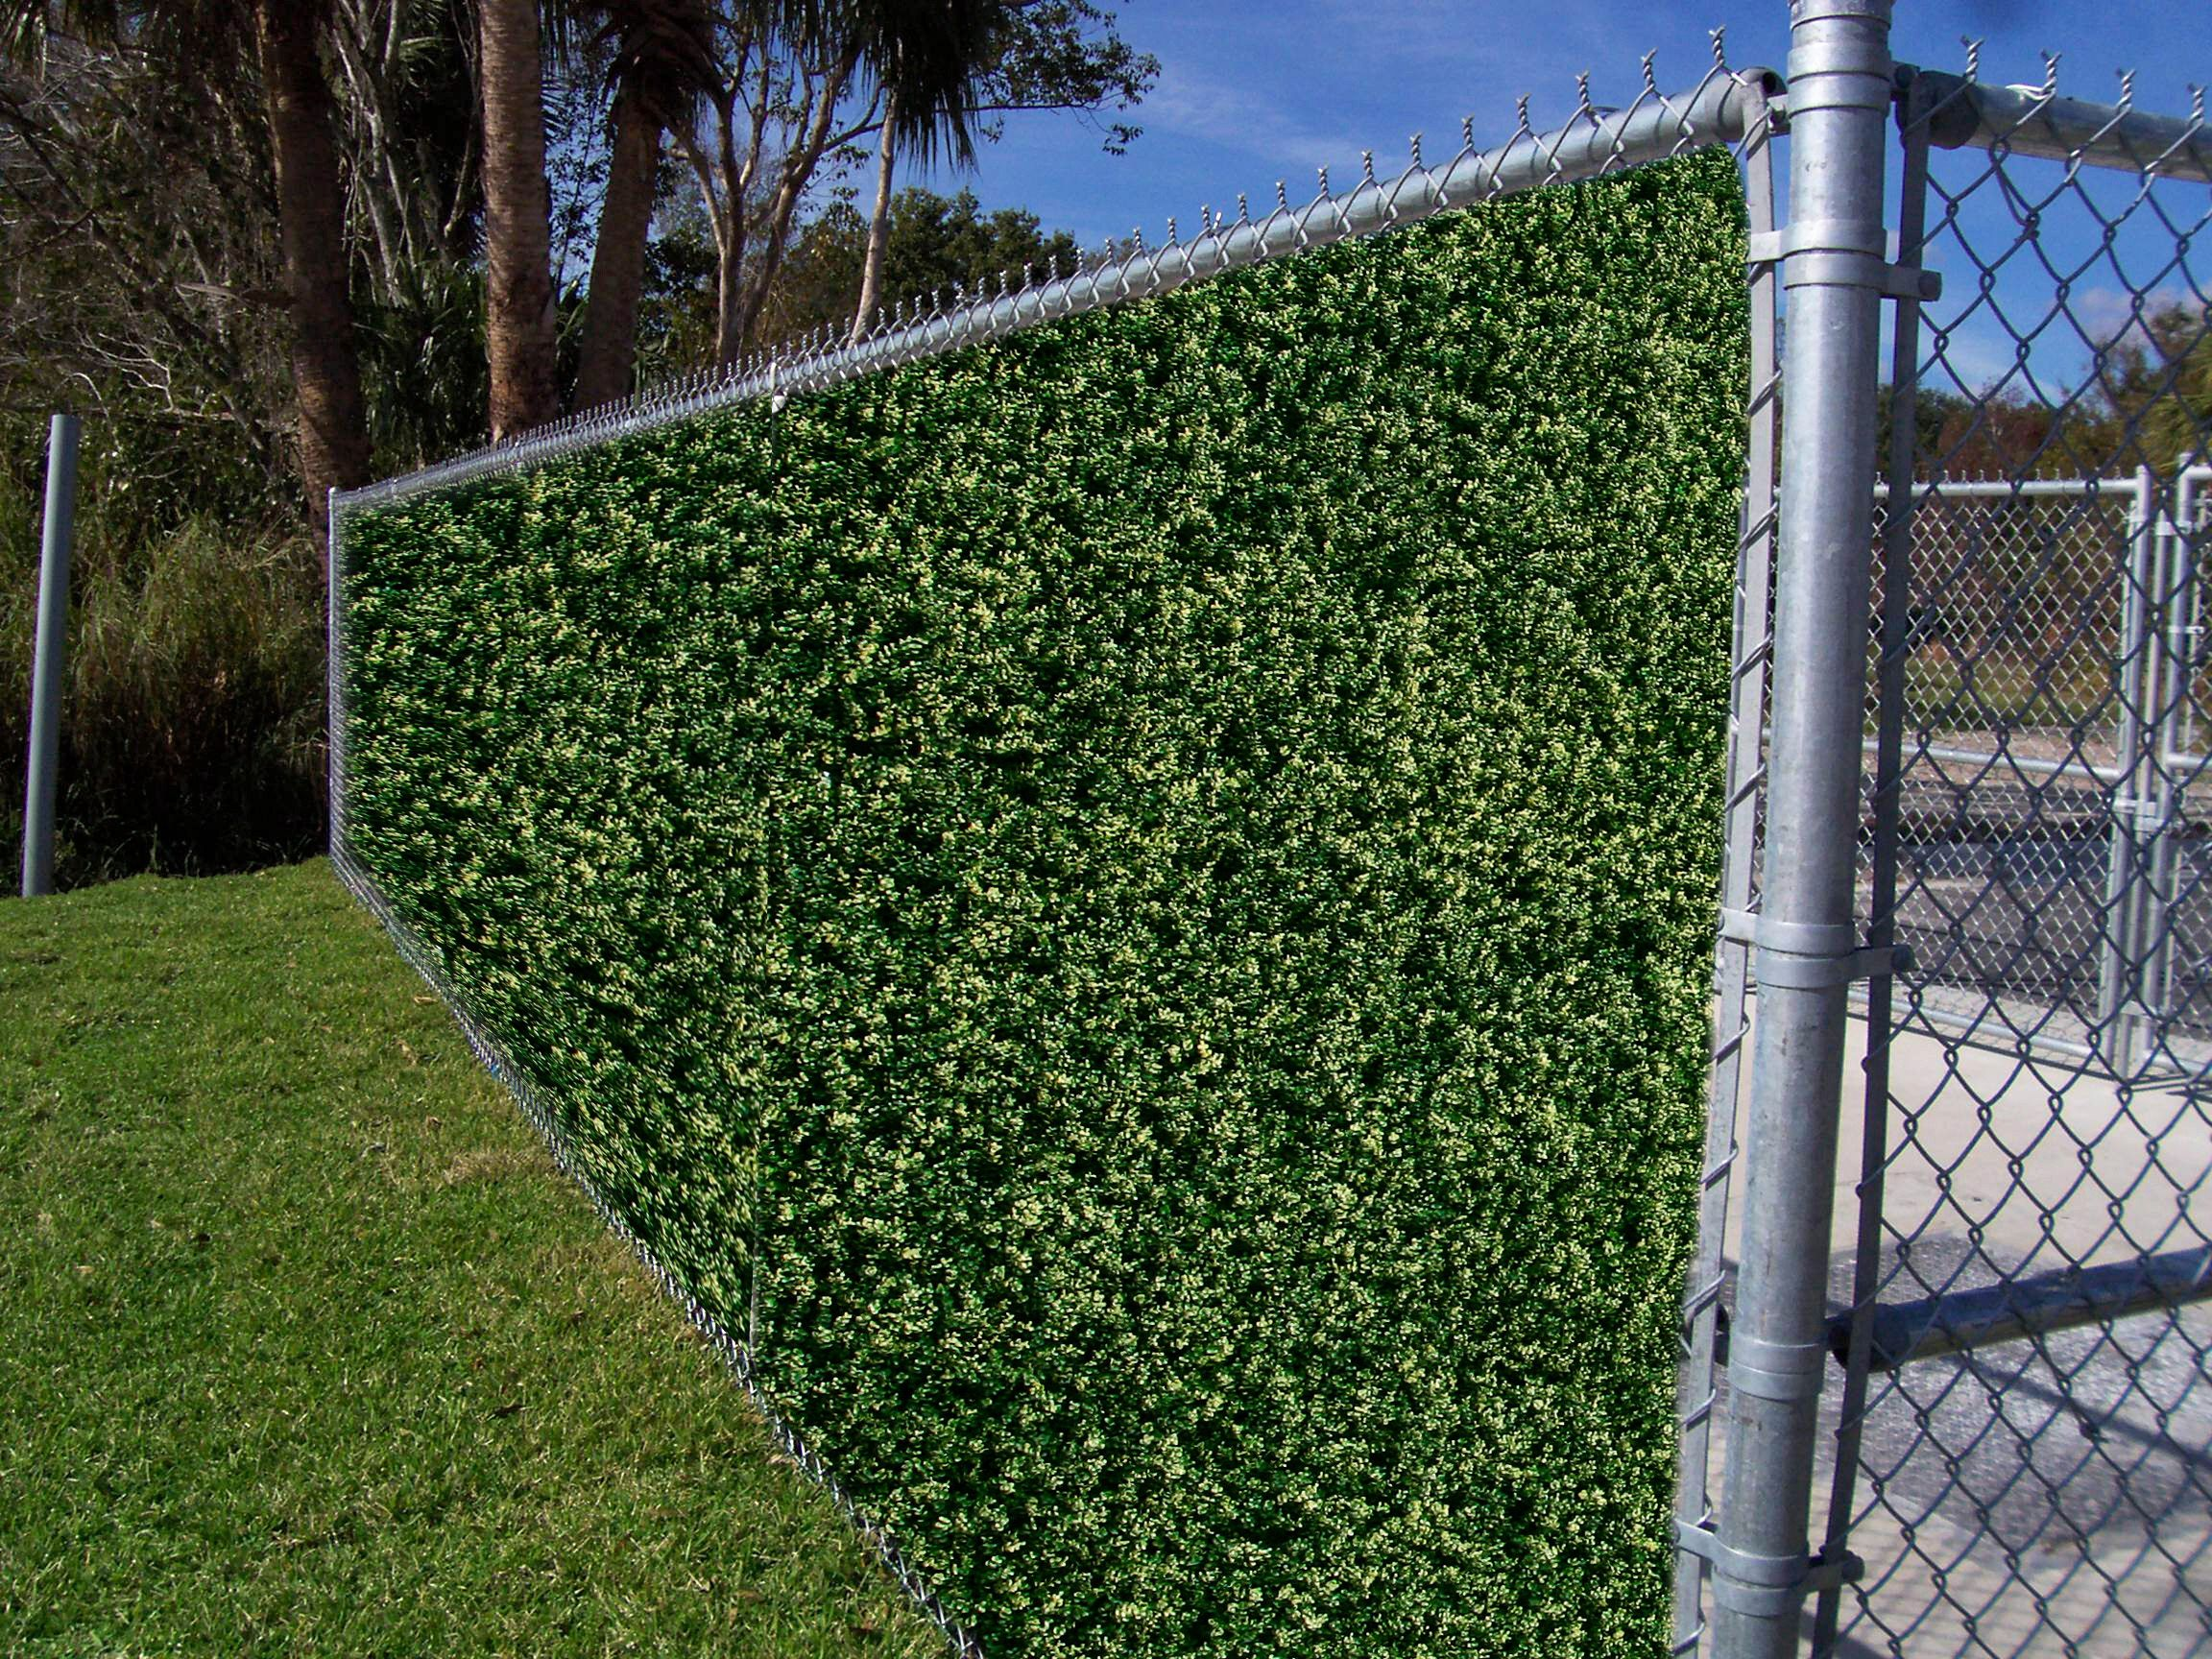 We Love The Look Of This Wire Fence Now You Can Easily Have A Green Wall And Beautiful Privacy Artific Backyard Fences Fence Design Artificial Plants Outdoor